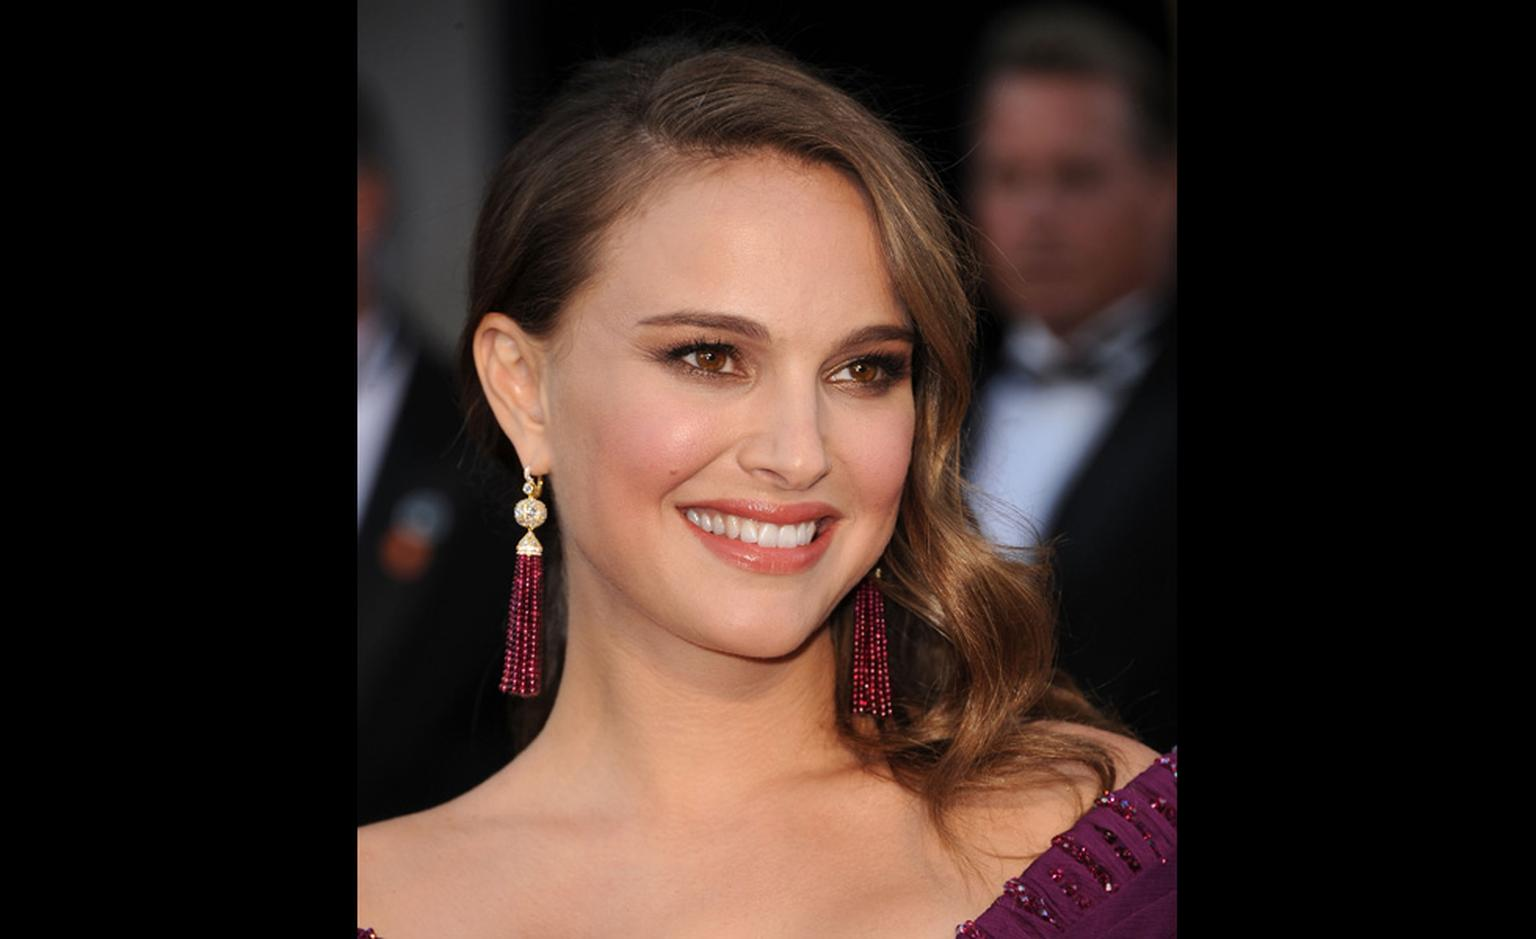 Natalie Portman, who won 'Best Actress' Oscar at the Academy awards for her role in Black Swan wears Tiffany rubellite tassel earrings on the red carpet.